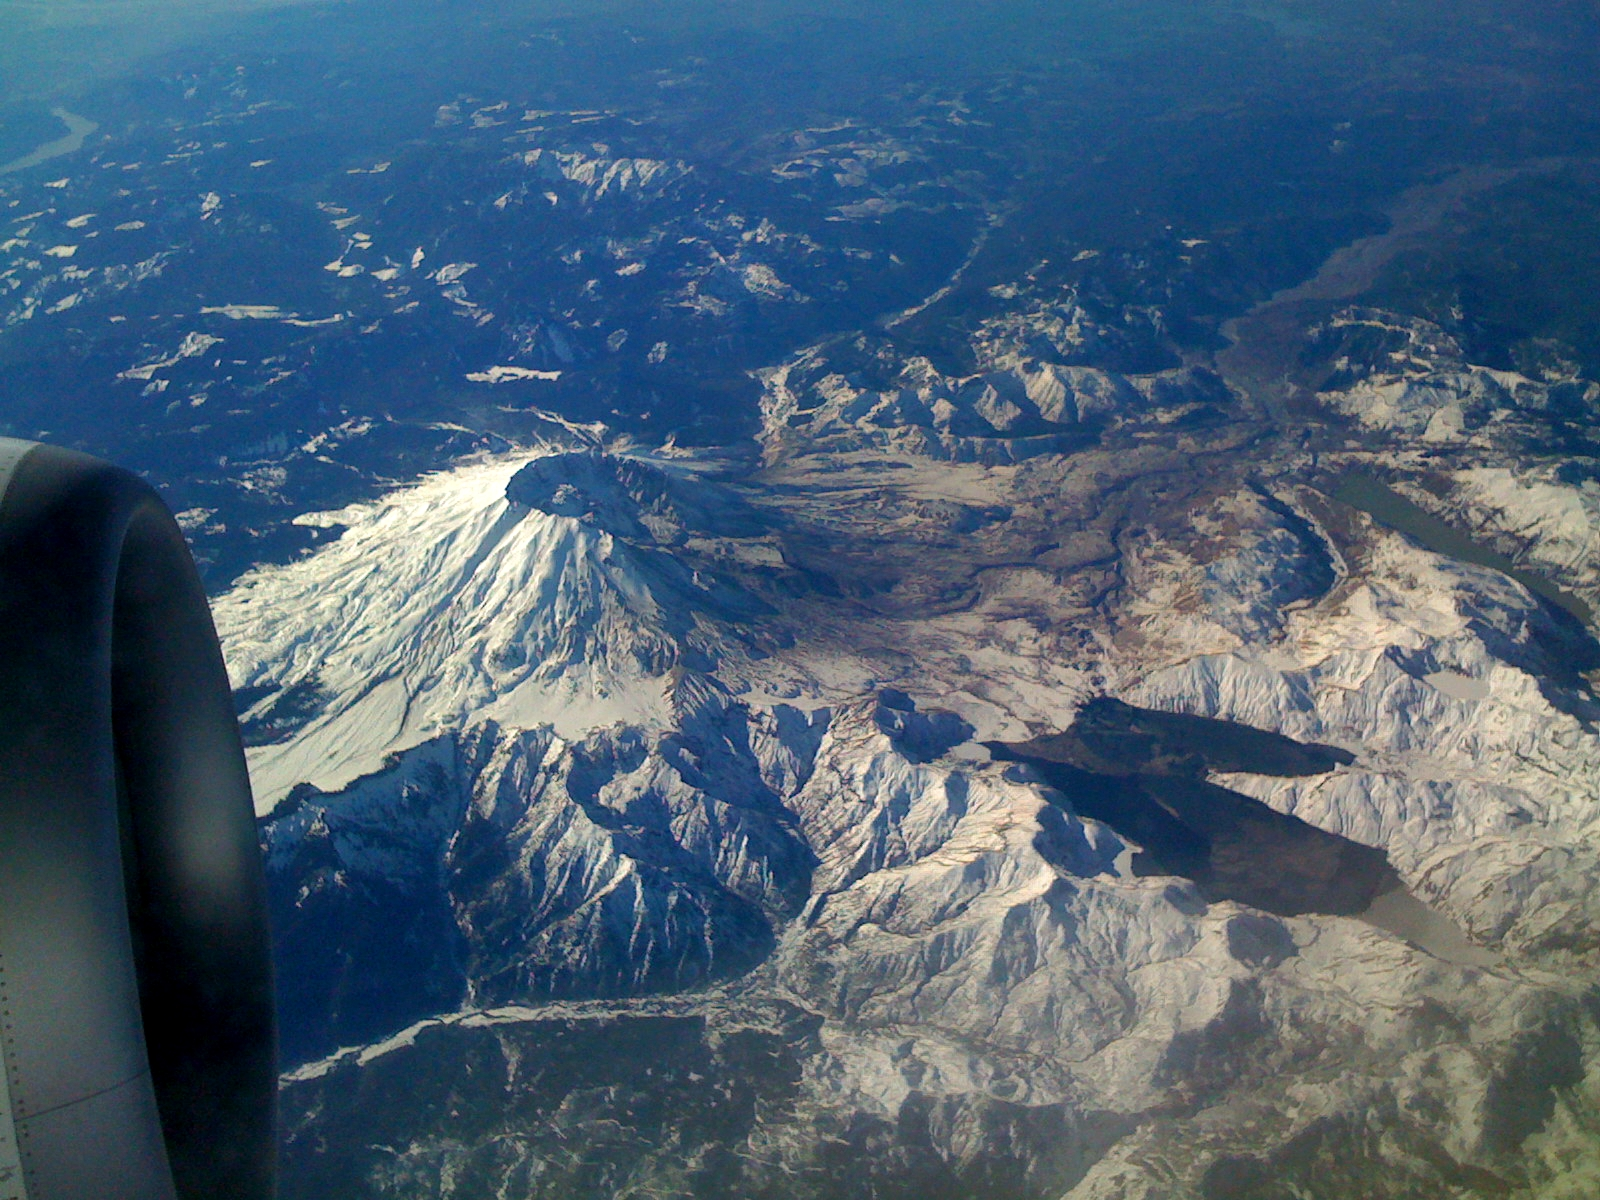 mt st helens essay Mount st helens is an active stratovalcano in skamania county, washington, in the pacific northwest region of the united states it is located 96 miles south of seattle and 53 miles mount st helens includes layers of basalt and andesite through which several domes of dacite lava have erupted.